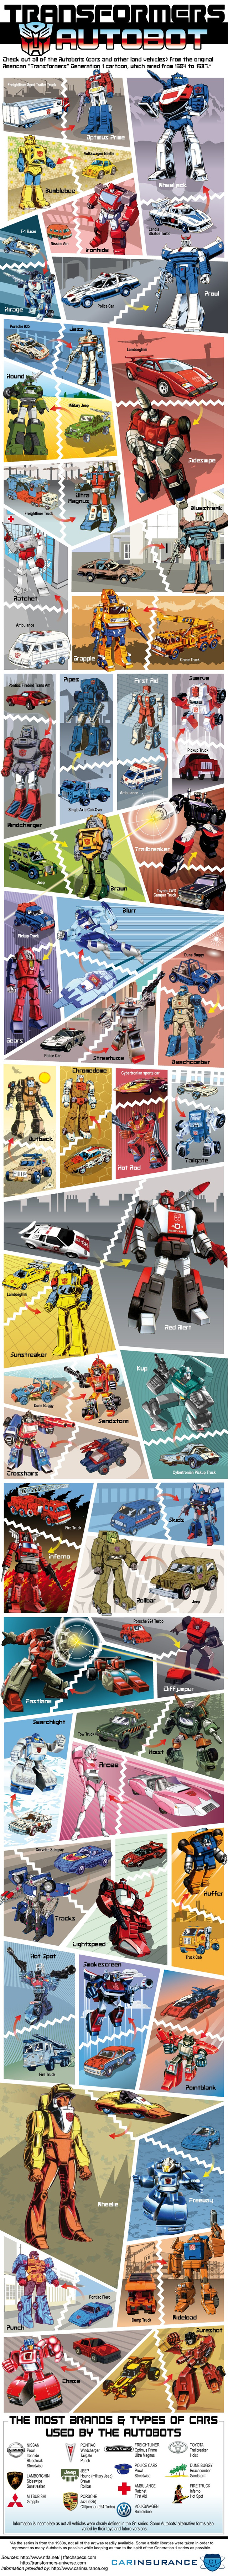 This Transformers Infographic Shows The Car Behind Every Autobot